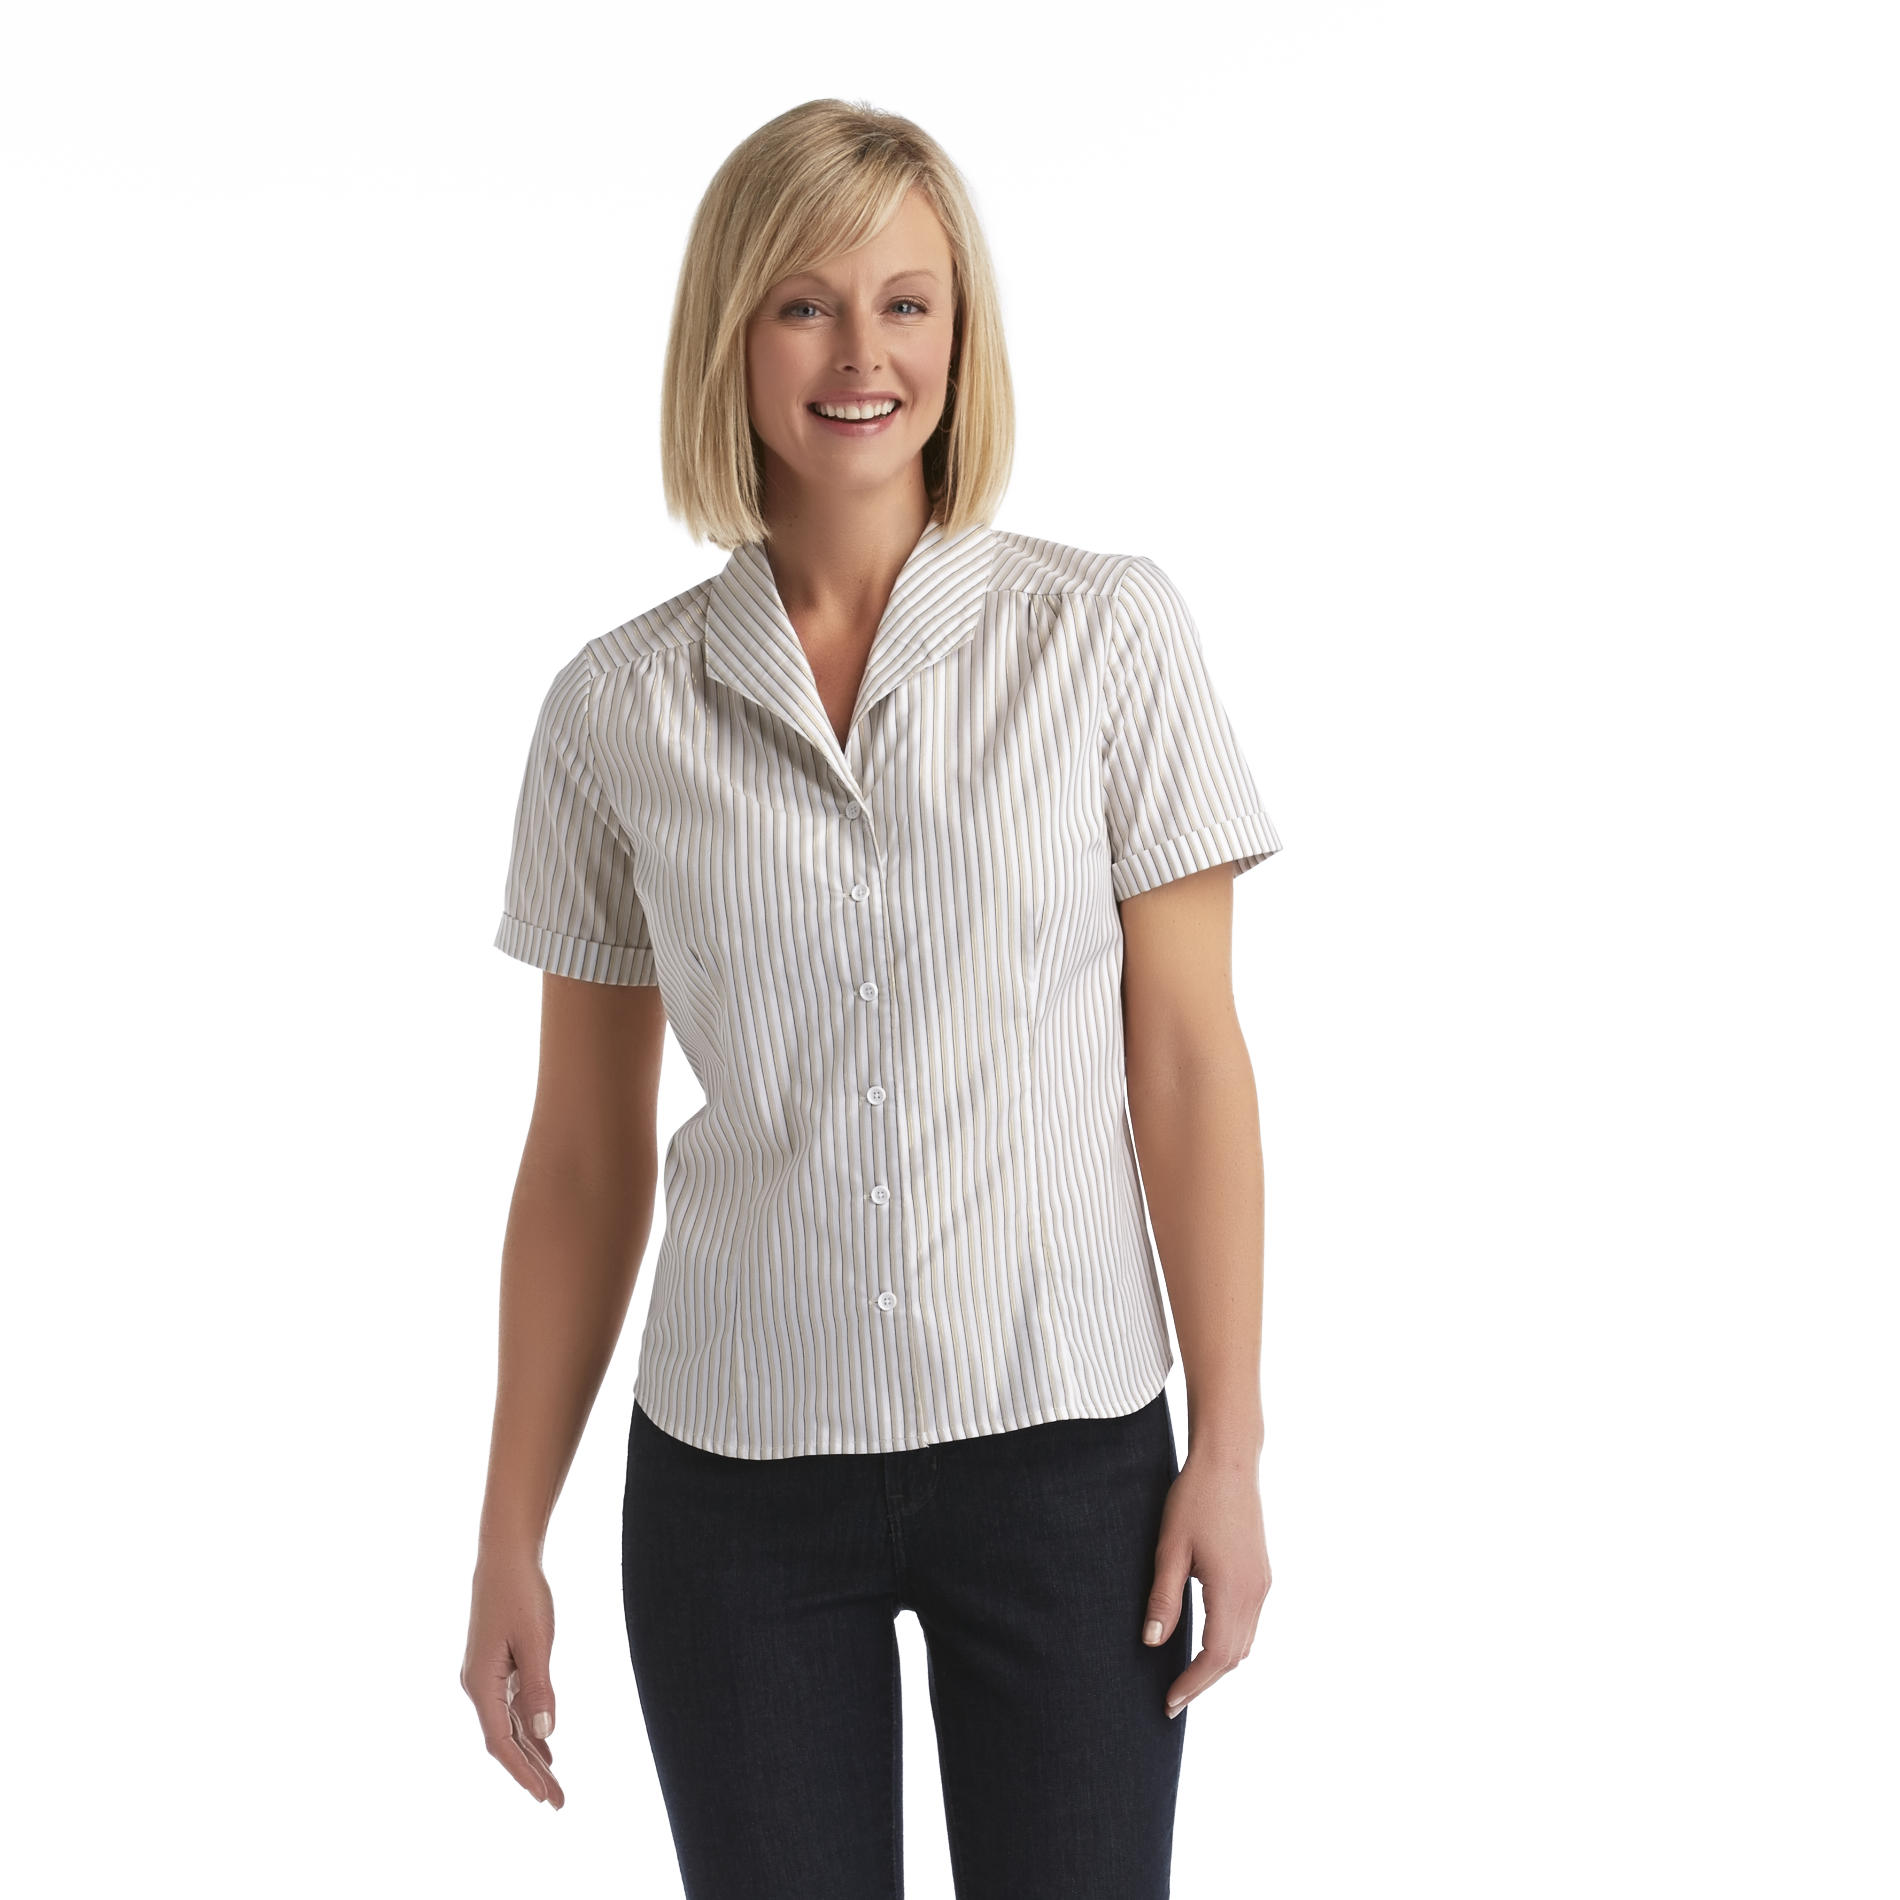 Jaclyn Smith Women's Button-Front Shirt - Striped at Kmart.com